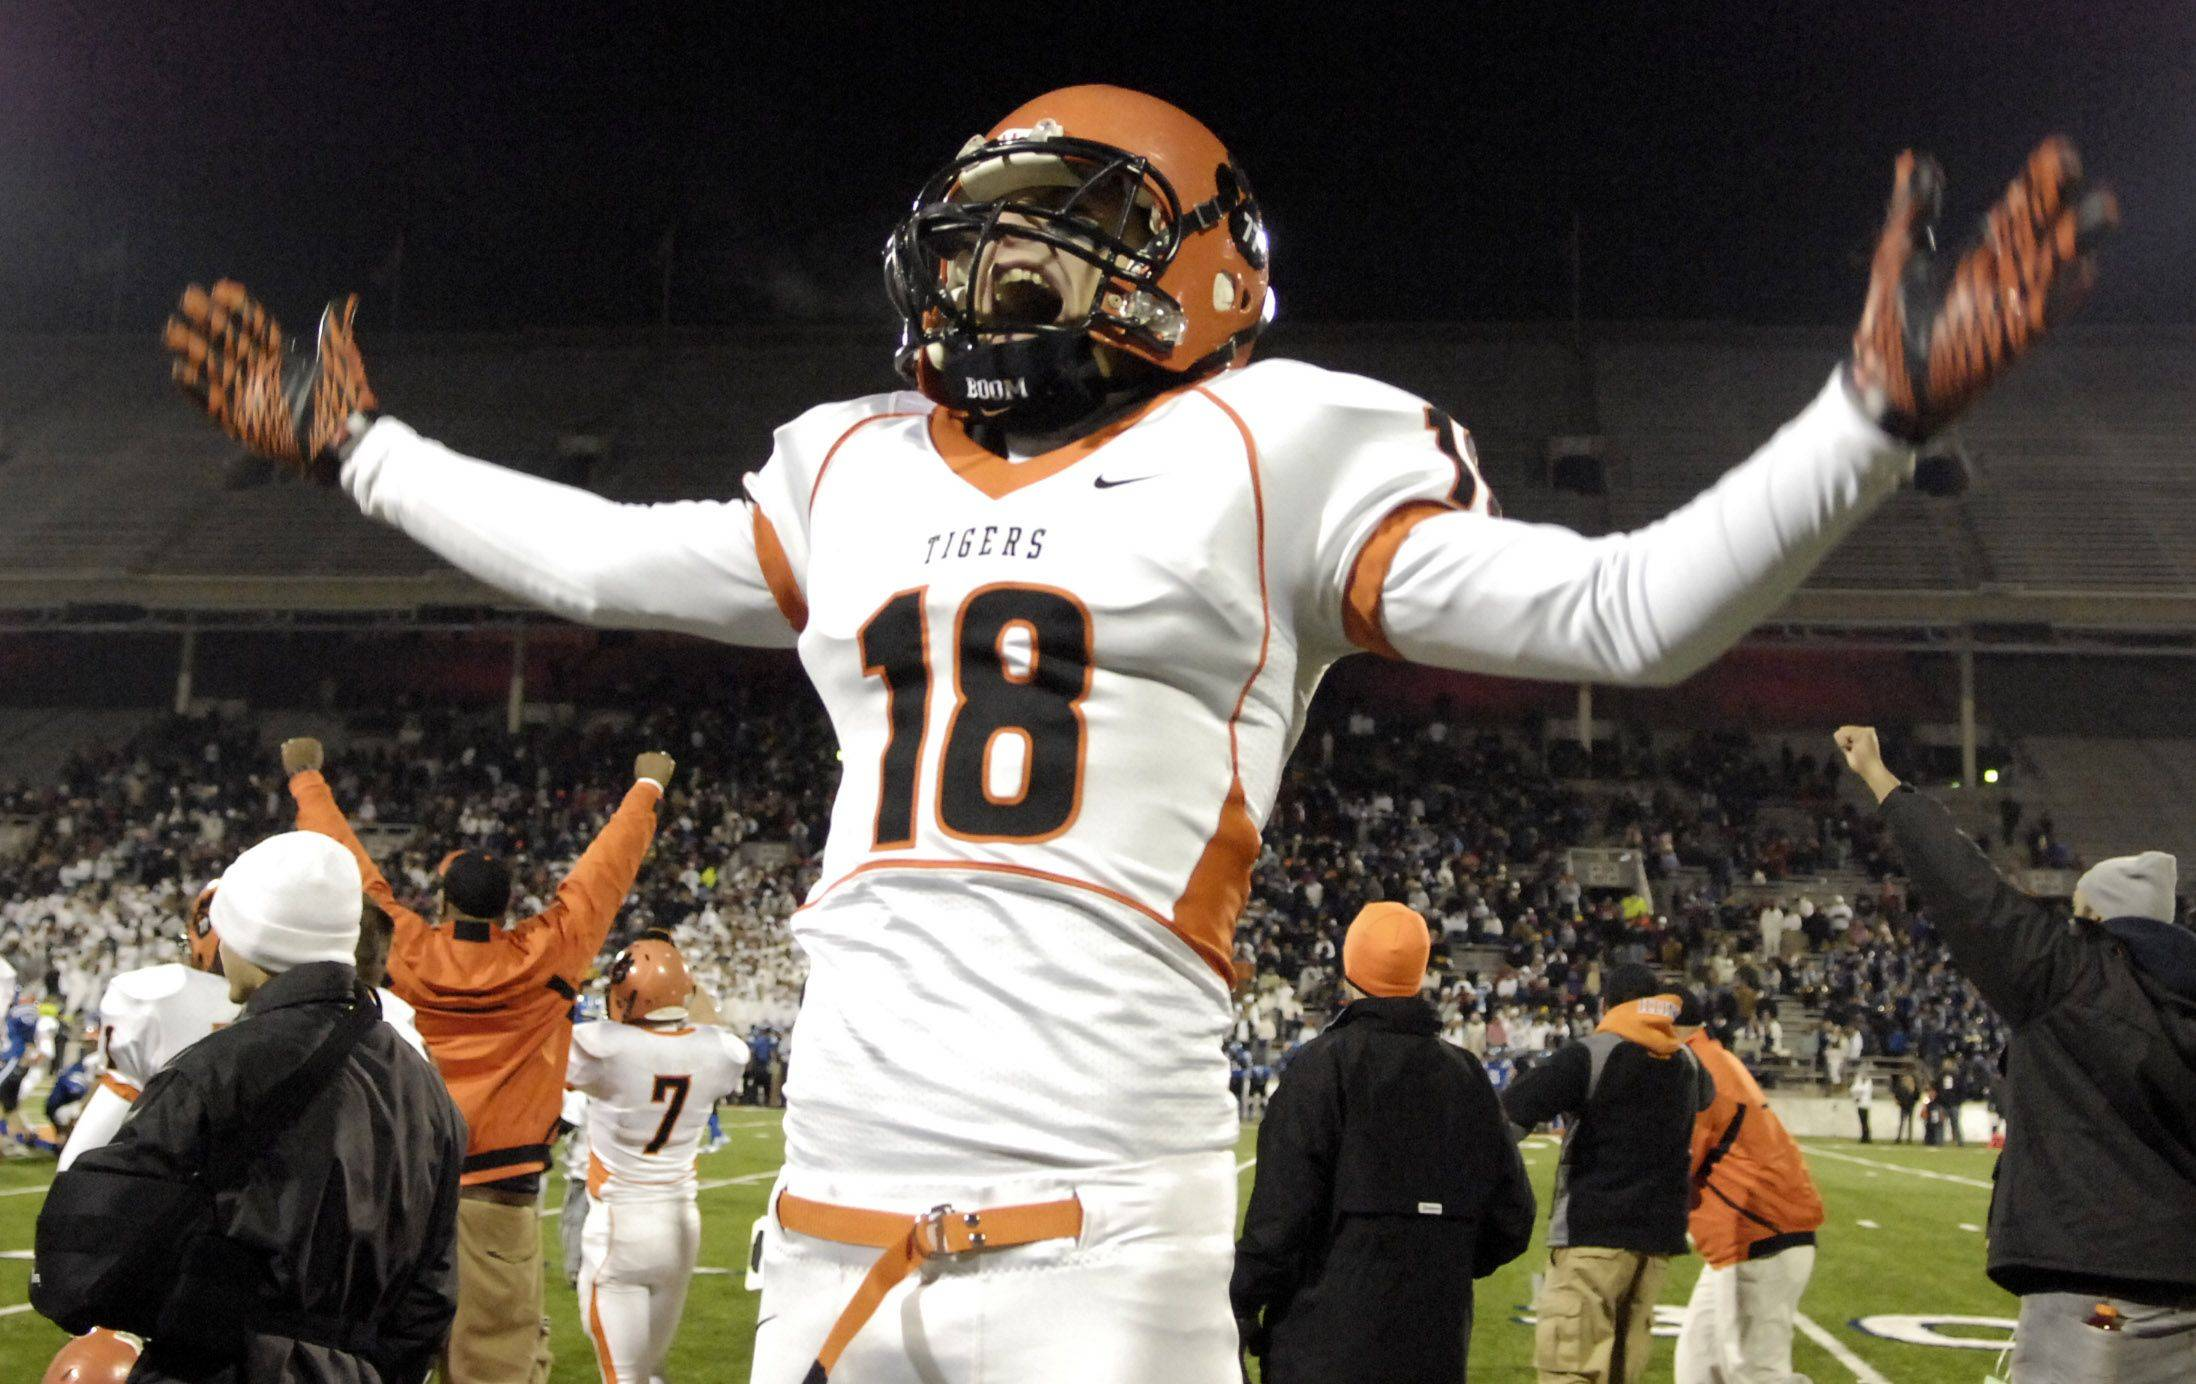 Wheaton Warrenville South's Joe Sullivan celebrates the Tigers final touchdown against Lake Zurich during the Class 7A state final in Champaign Saturday.